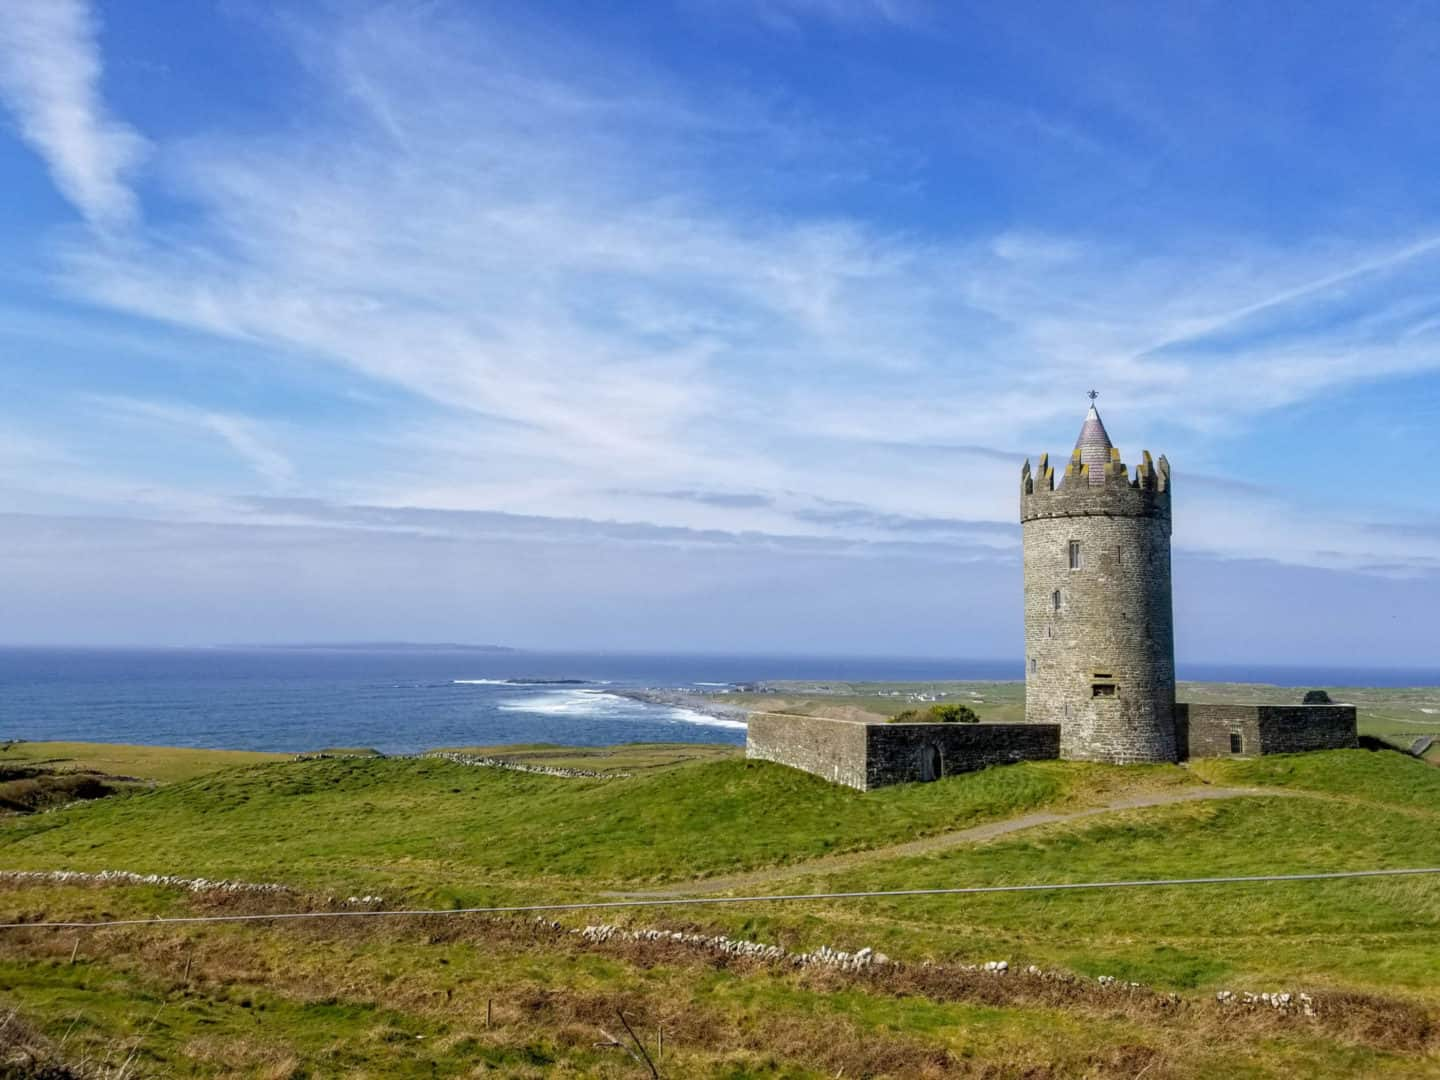 Doonagore Castle is one of the things to do in Doolin, Ireland